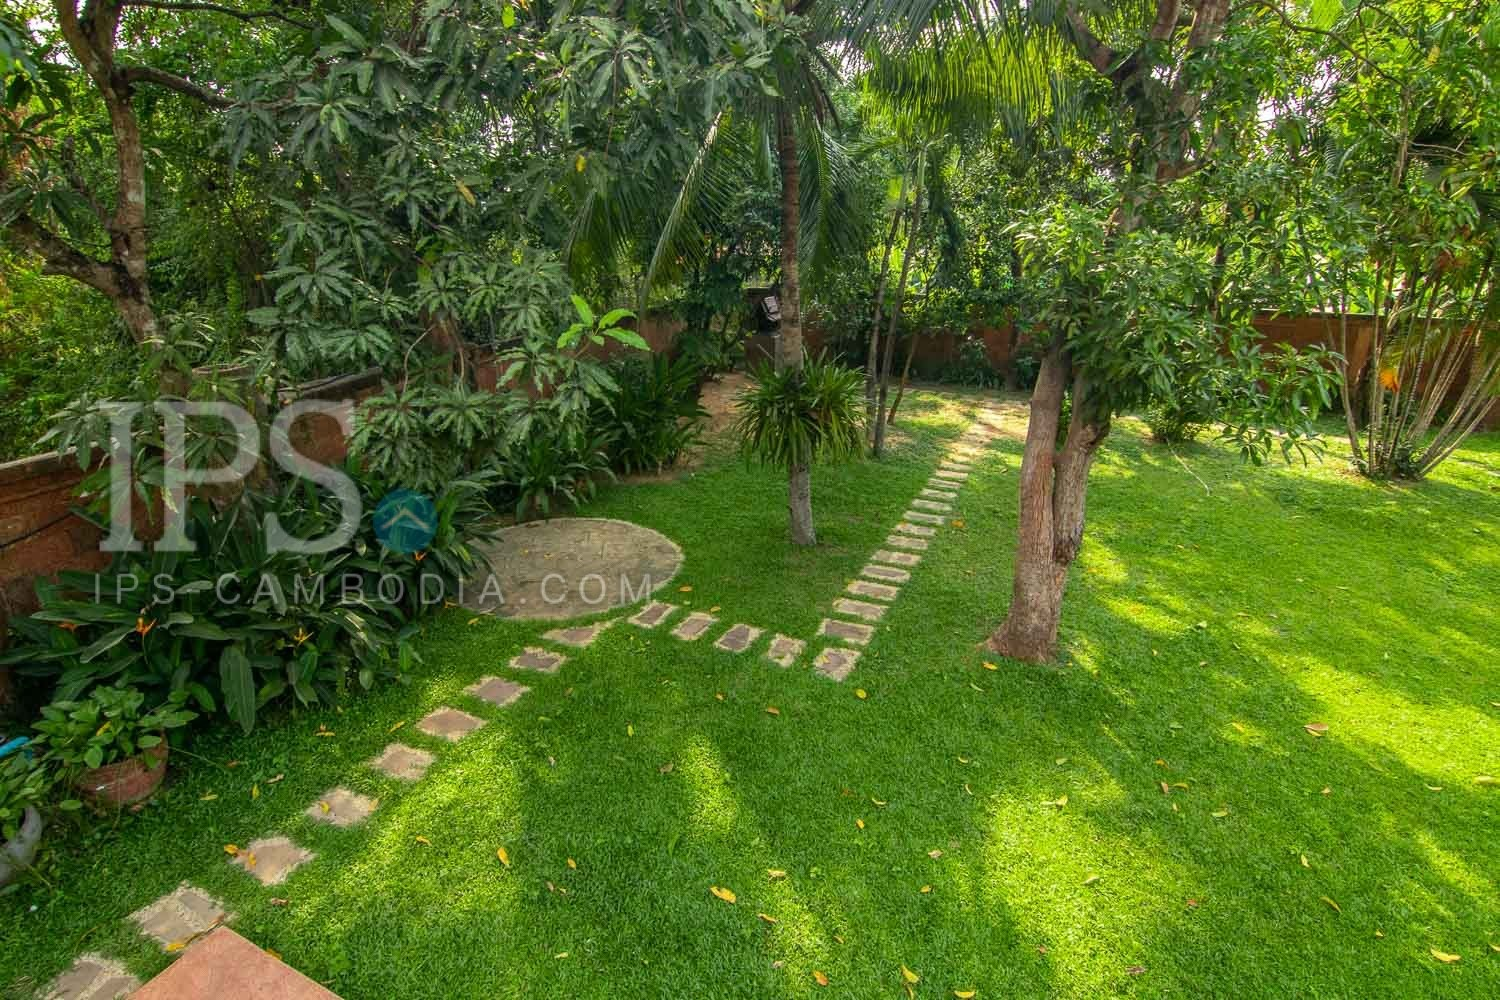 Khmer Heritage Home For Sale - Wat Damnak, Siem Reap